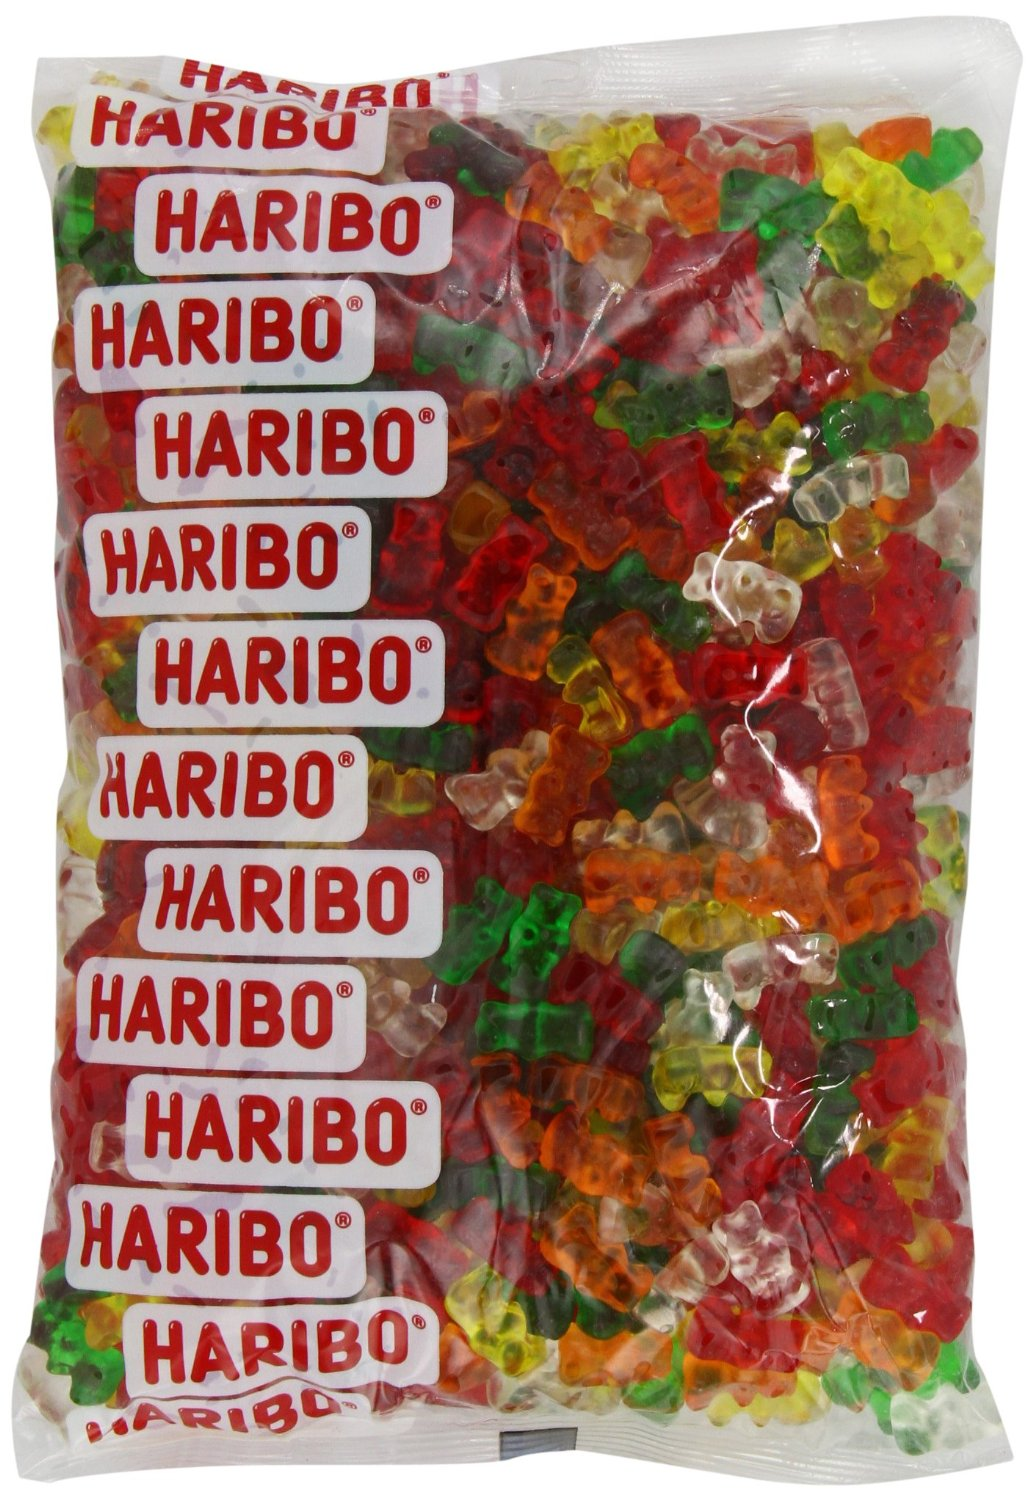 sugarless haribo gummy bear reviews tell tales of toilet terror